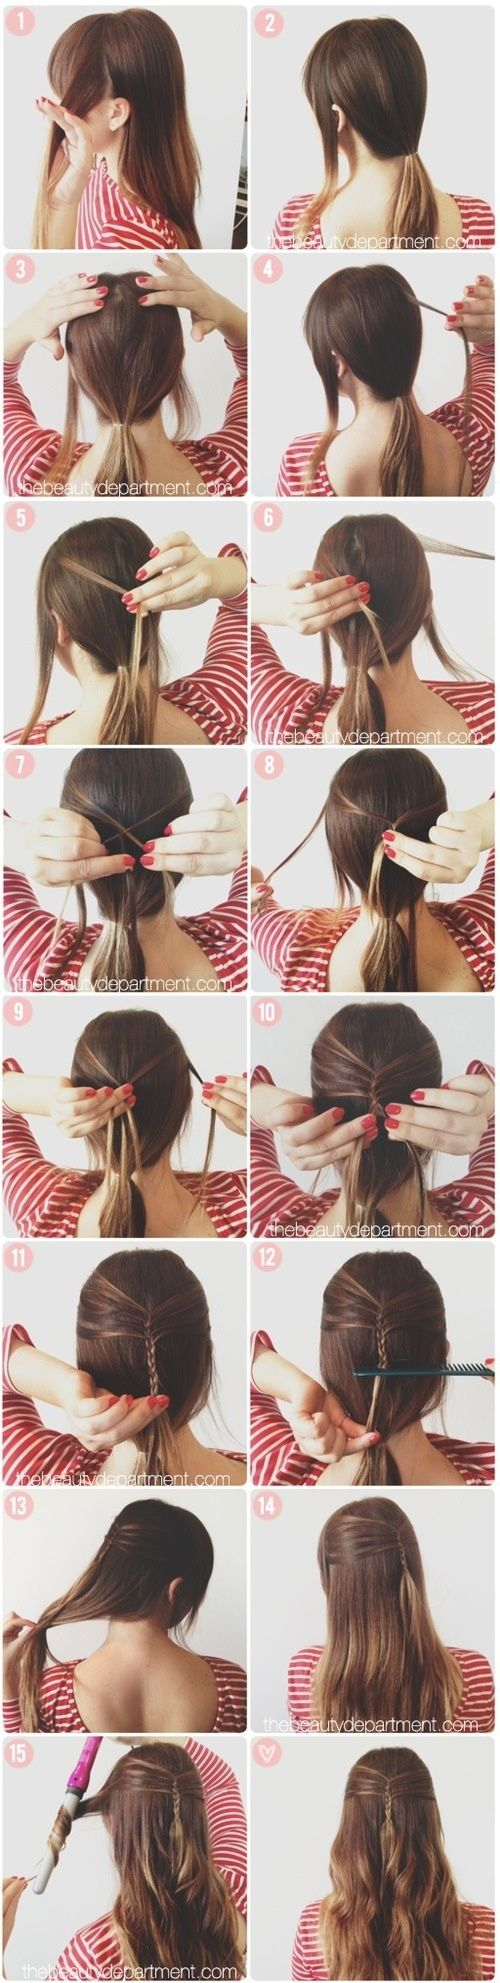 Add something different to your normal curled hair!